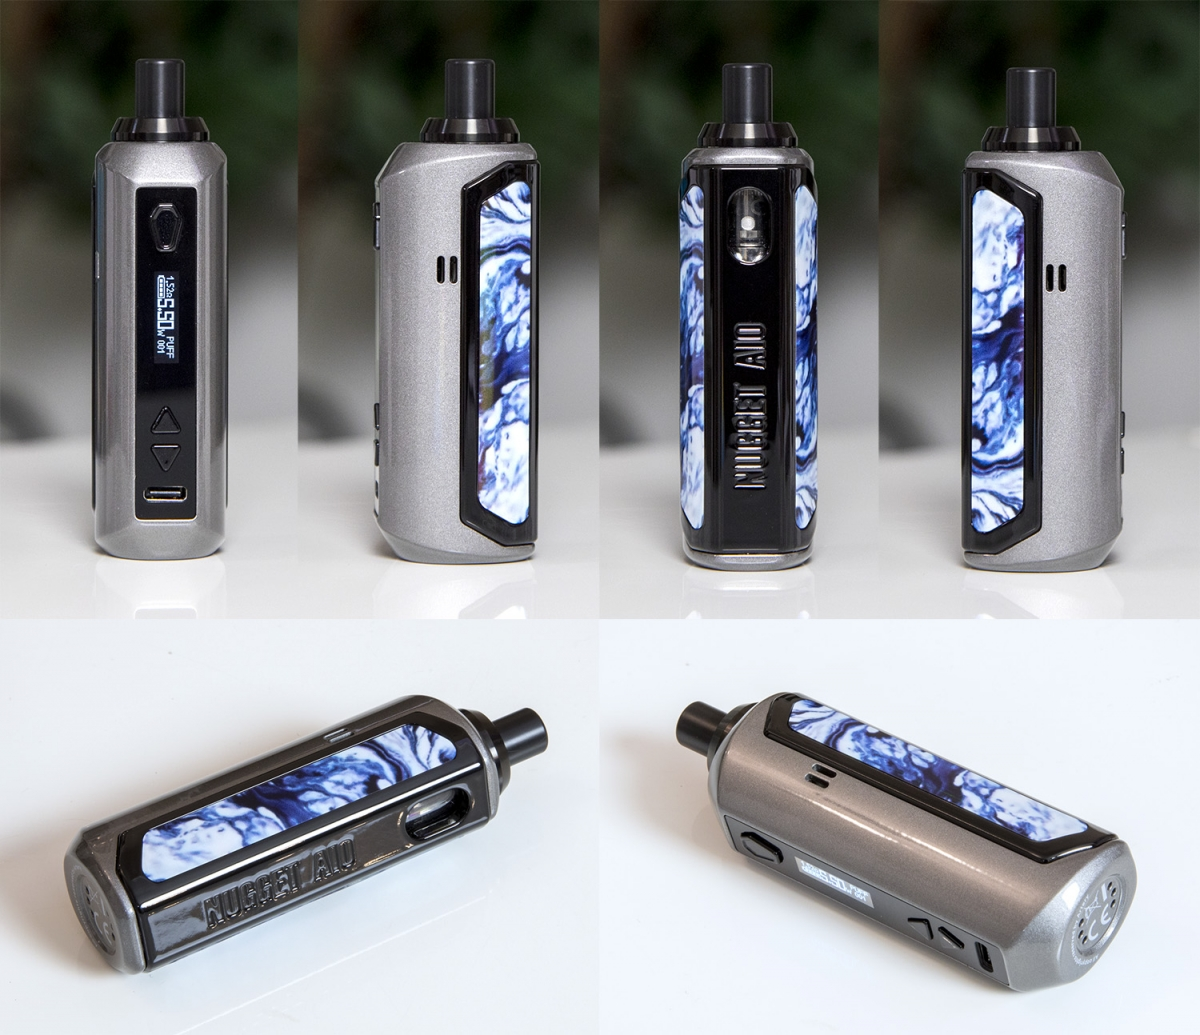 Artery Nugget AIO 40W Pod Kit from all angles